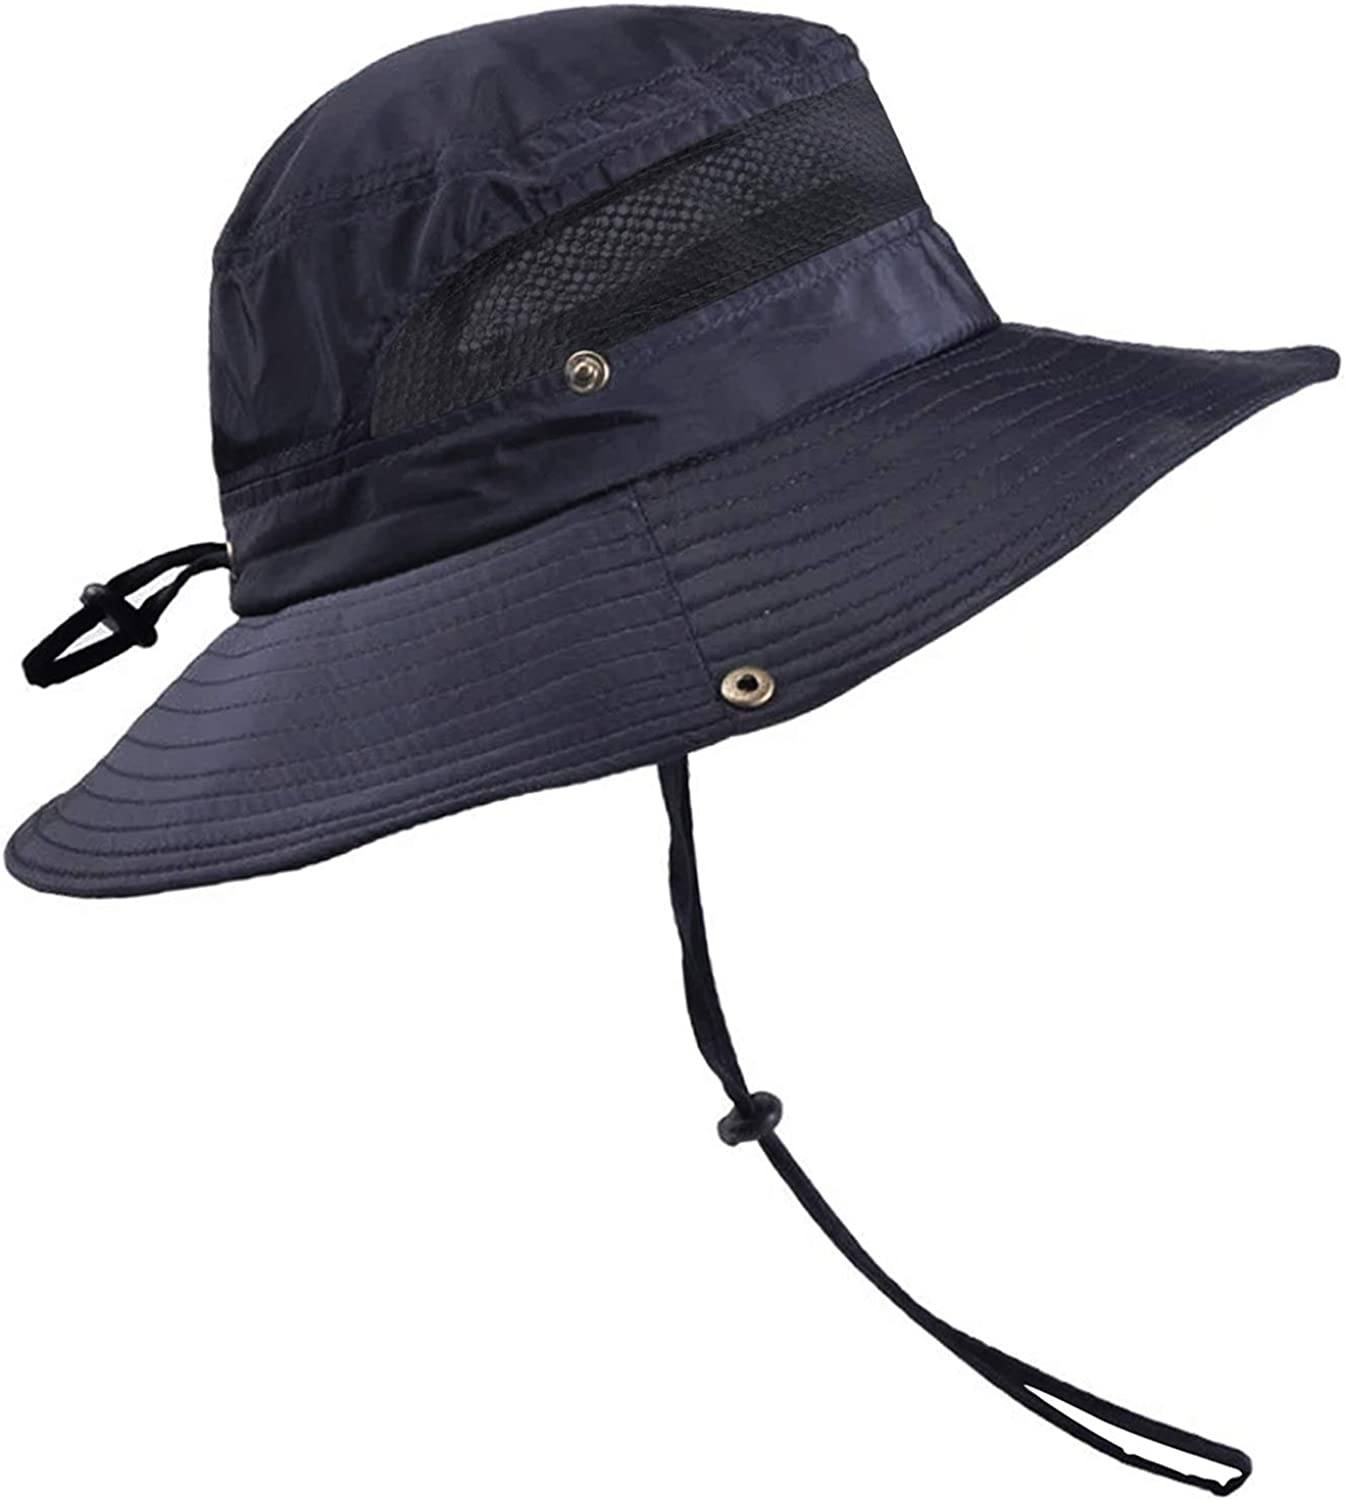 Sun Hat for Men/Women, Fishing Hat with UPF 50+ UV Protection Wide Brim Bucket Hat Breathable Packable Boonie Hat